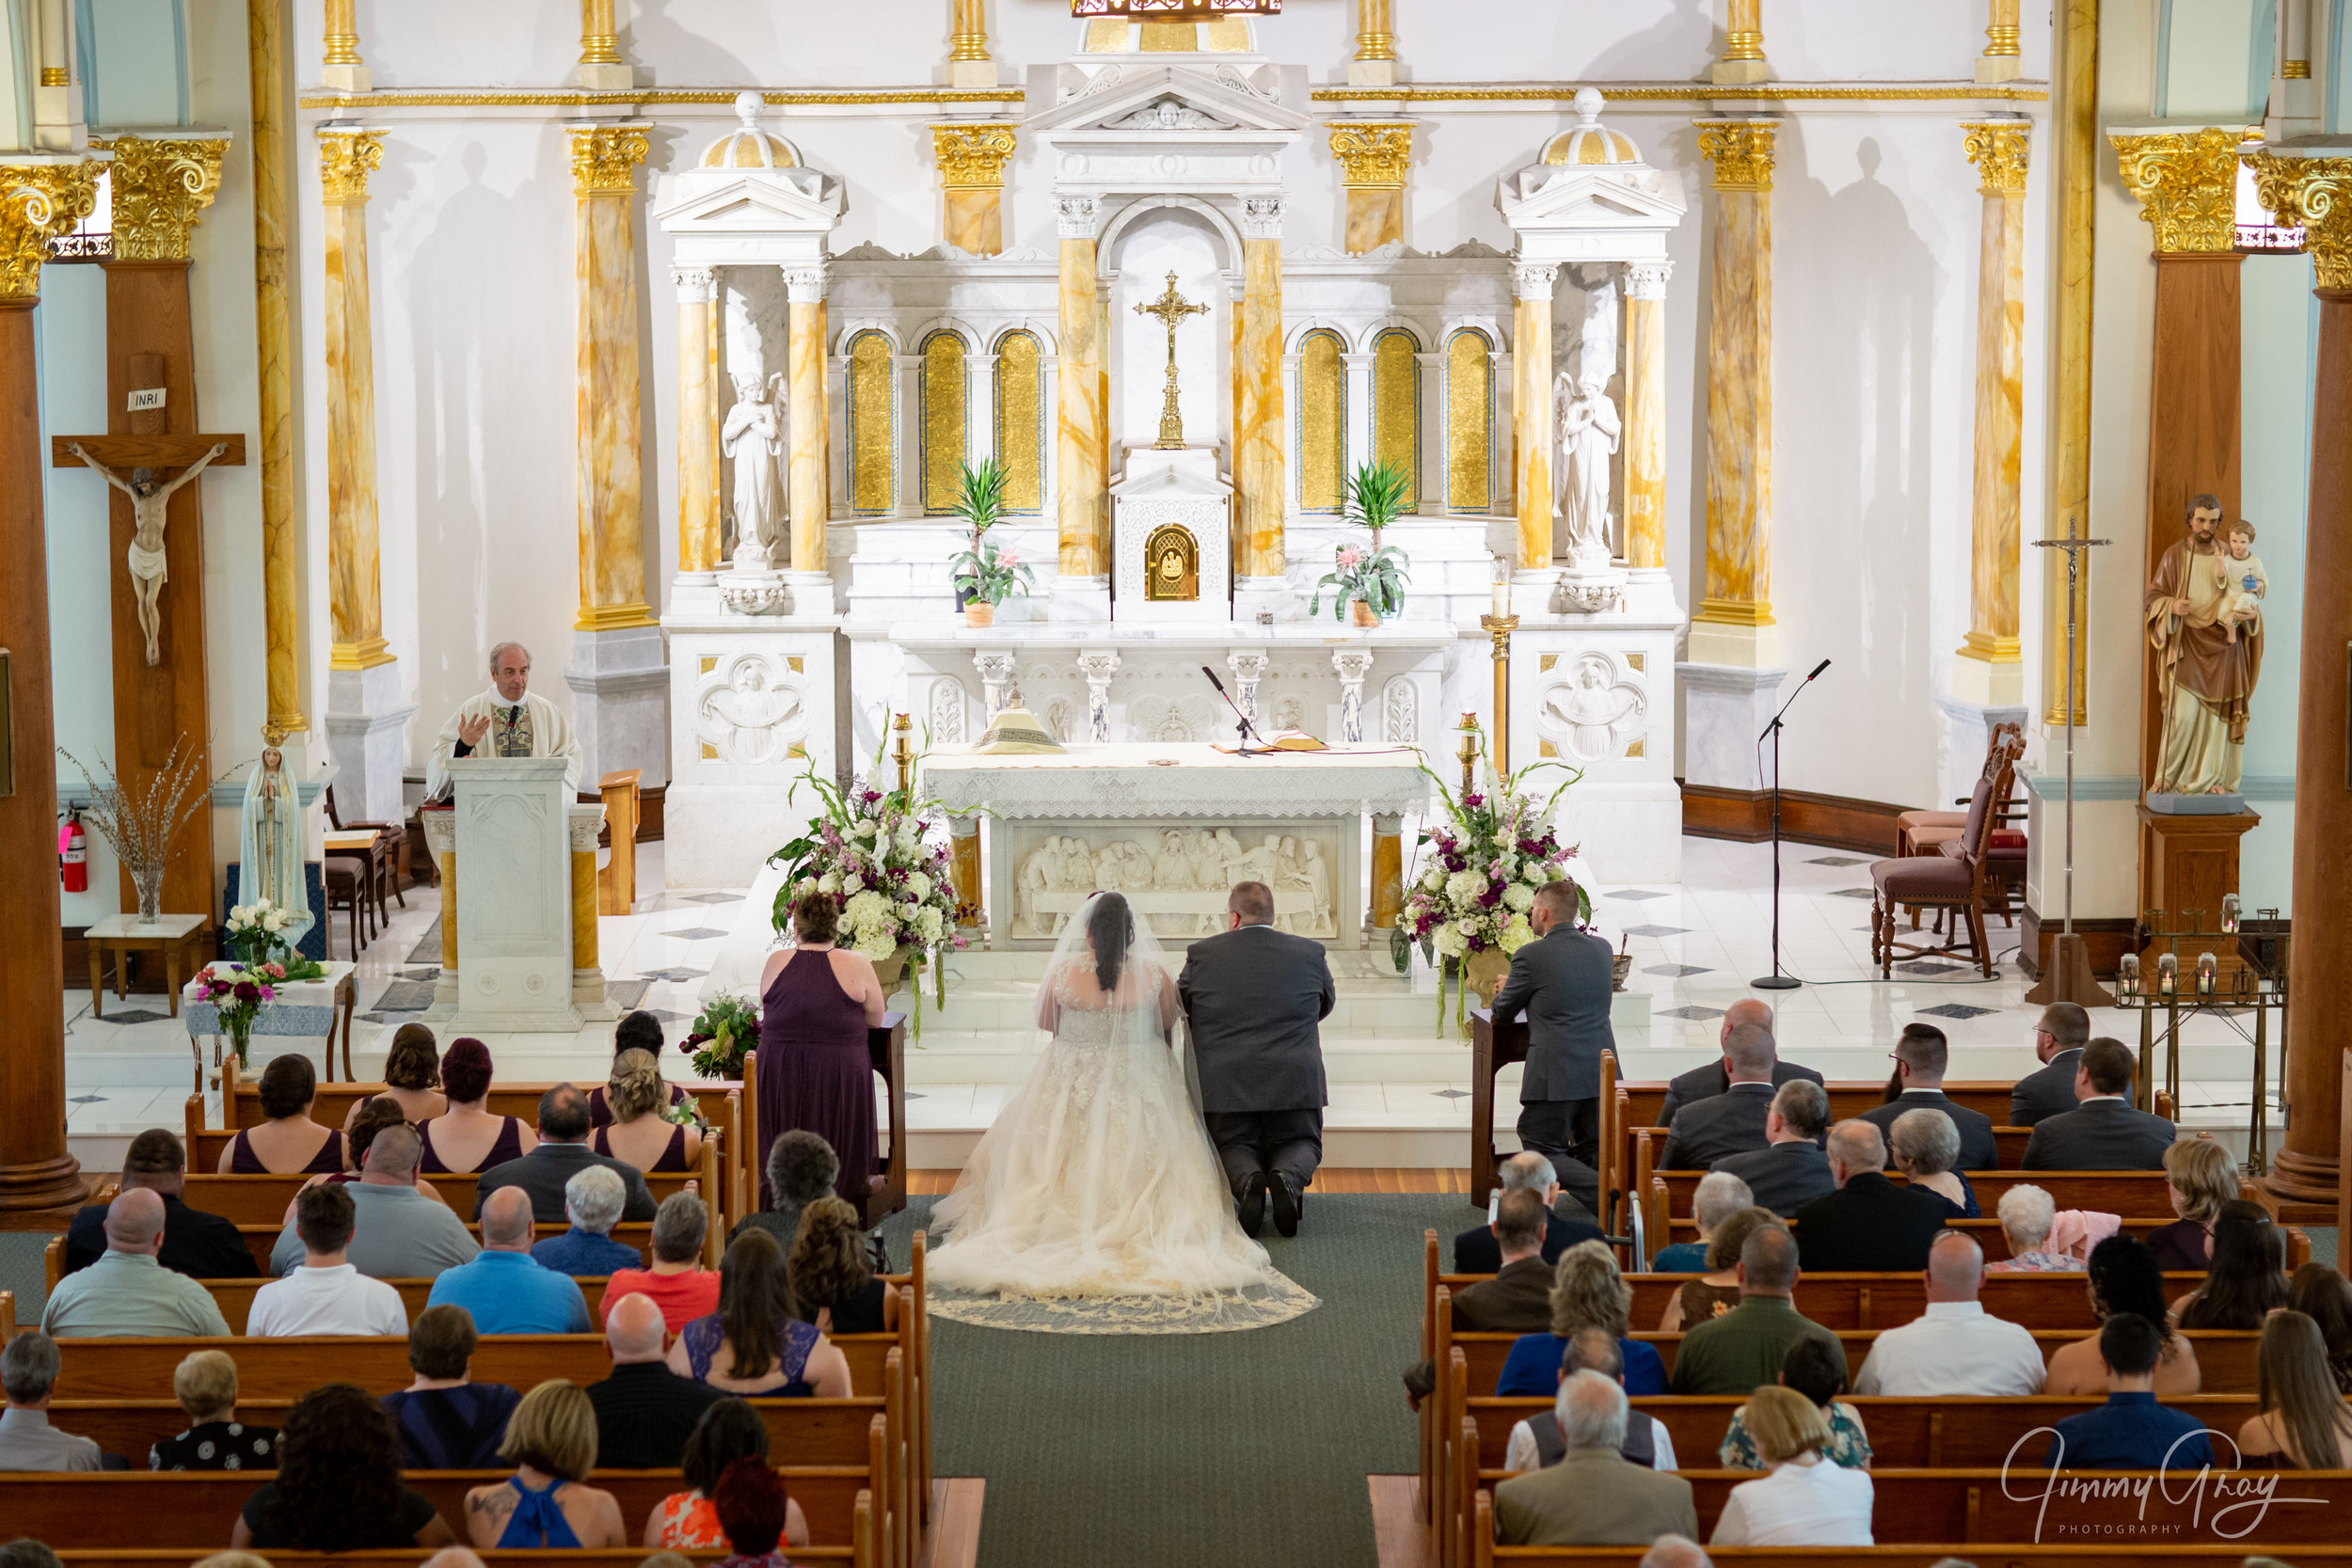 CT Wedding Photography - Jimmy Gray Photo - Baltic, CT - St. Mary's Church - Shot For Kady Provost Photography